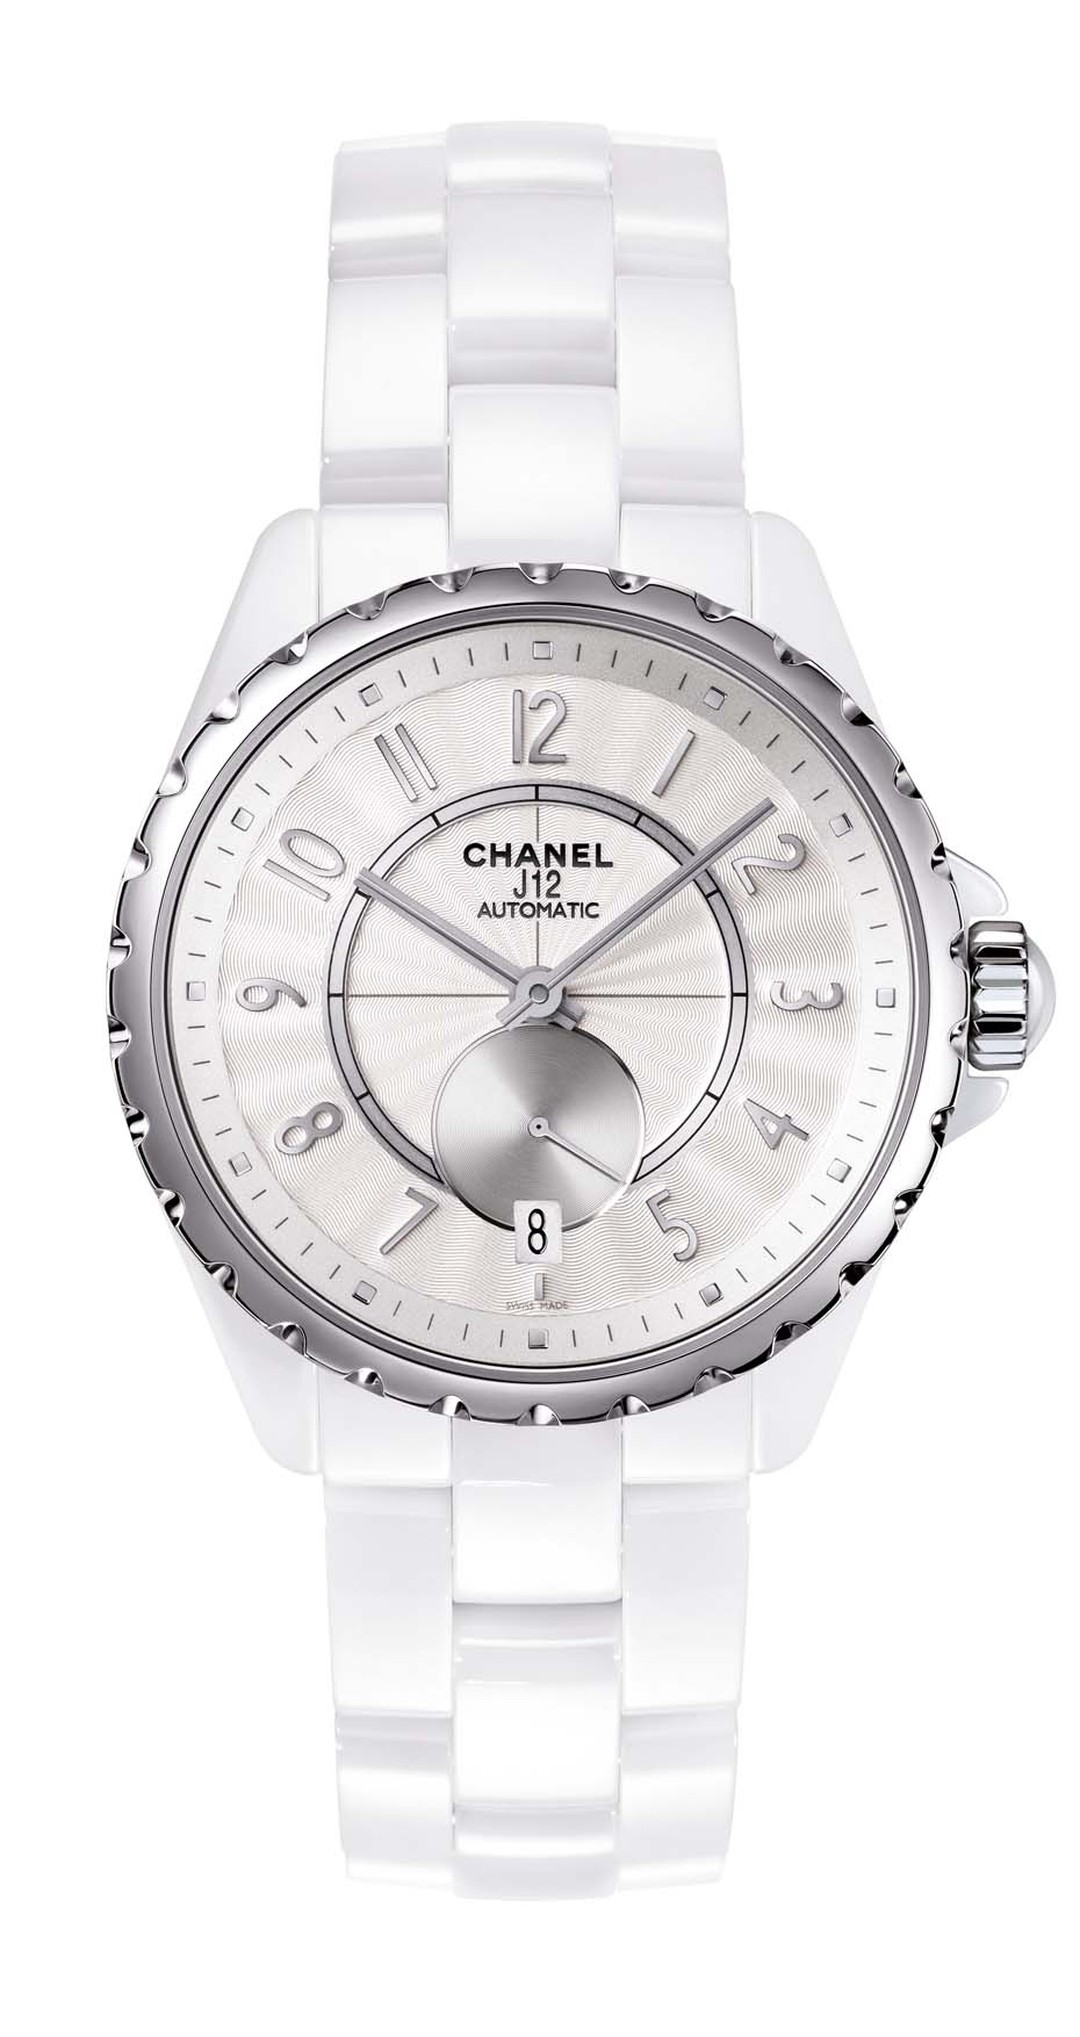 WatchesforHerChanel001.jpg